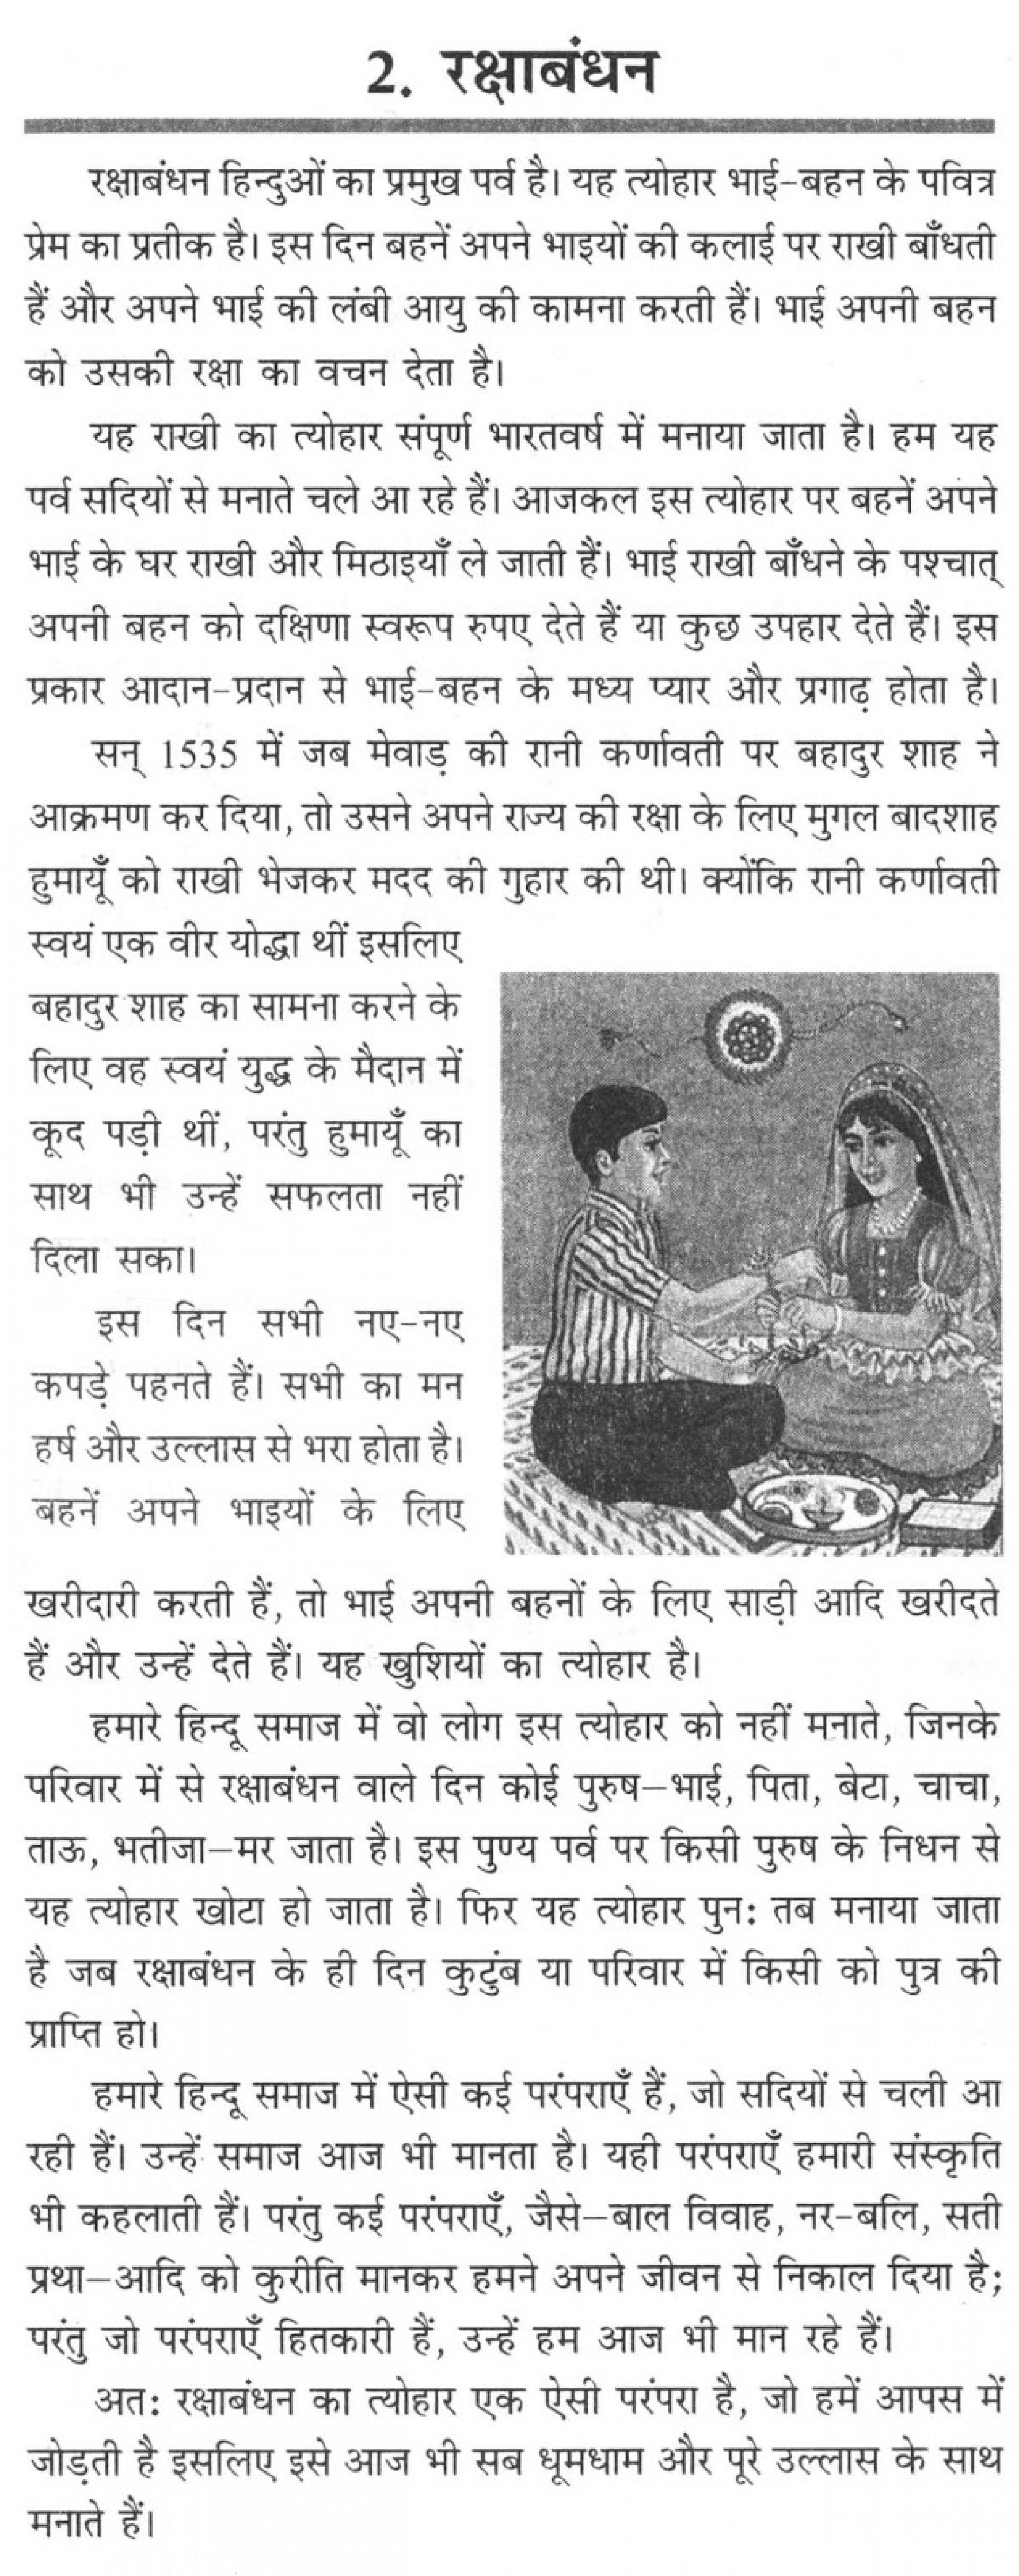 015 Raksha20bandhan20essay20in20hindi202016 Essay Example Good Habits In Exceptional Hindi Food Wikipedia 1920